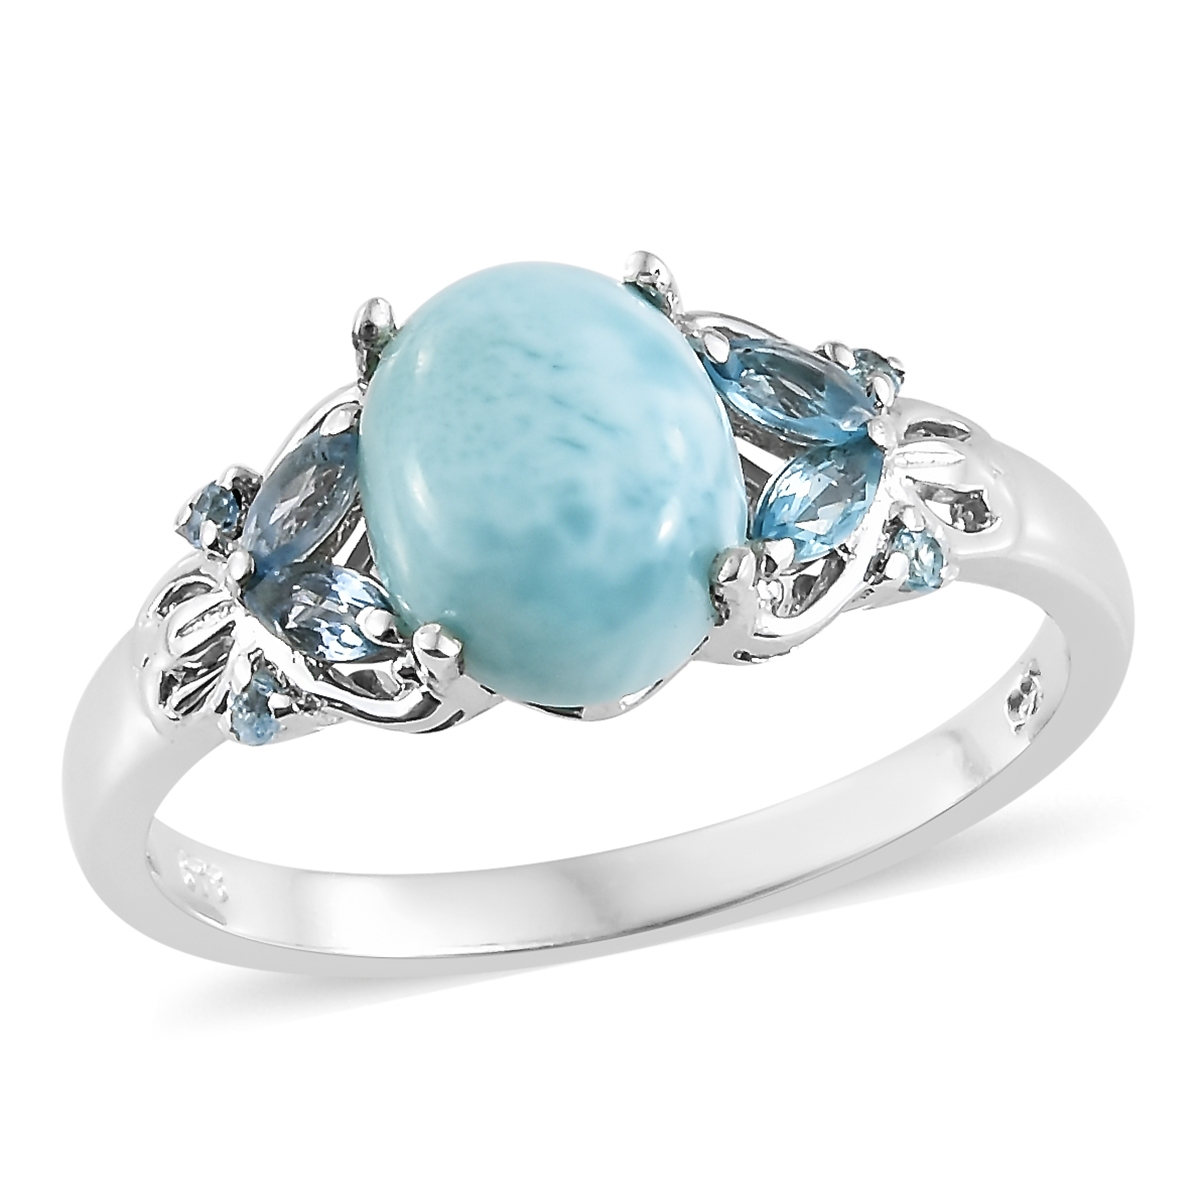 f29c9a5b4 Larimar, Madagascar Paraiba Apatite Platinum Over Sterling Silver Ring  (Size 8.0) 3.58 ctw | Shop LC